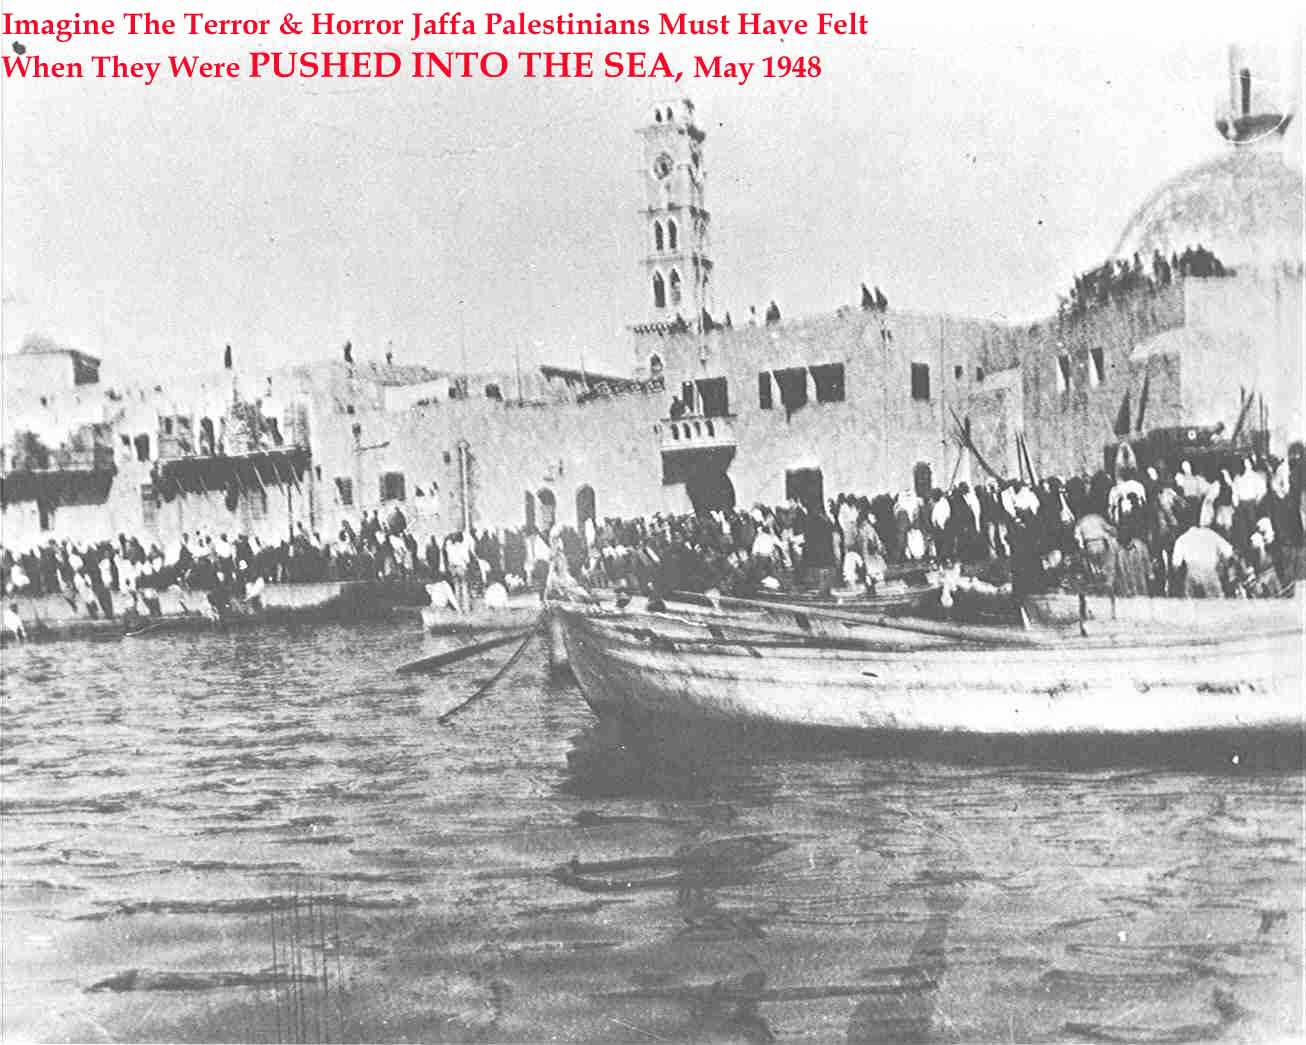 Jaffa&nbsp;-&nbsp;&#1610;&#1575;&#1601;&#1575;&nbsp;: The Exodus Of Jaffa's Residents Via Boats, May-1948. <a href=/Acre/Acre/Picture13753.html>Click here</a> to see another unique picture for the people of Acre (Akka) as they were being pushed into the see. Ironically, Israelis claim that Palestinians are trying to commit this crime! Click on image to see a larger picture.